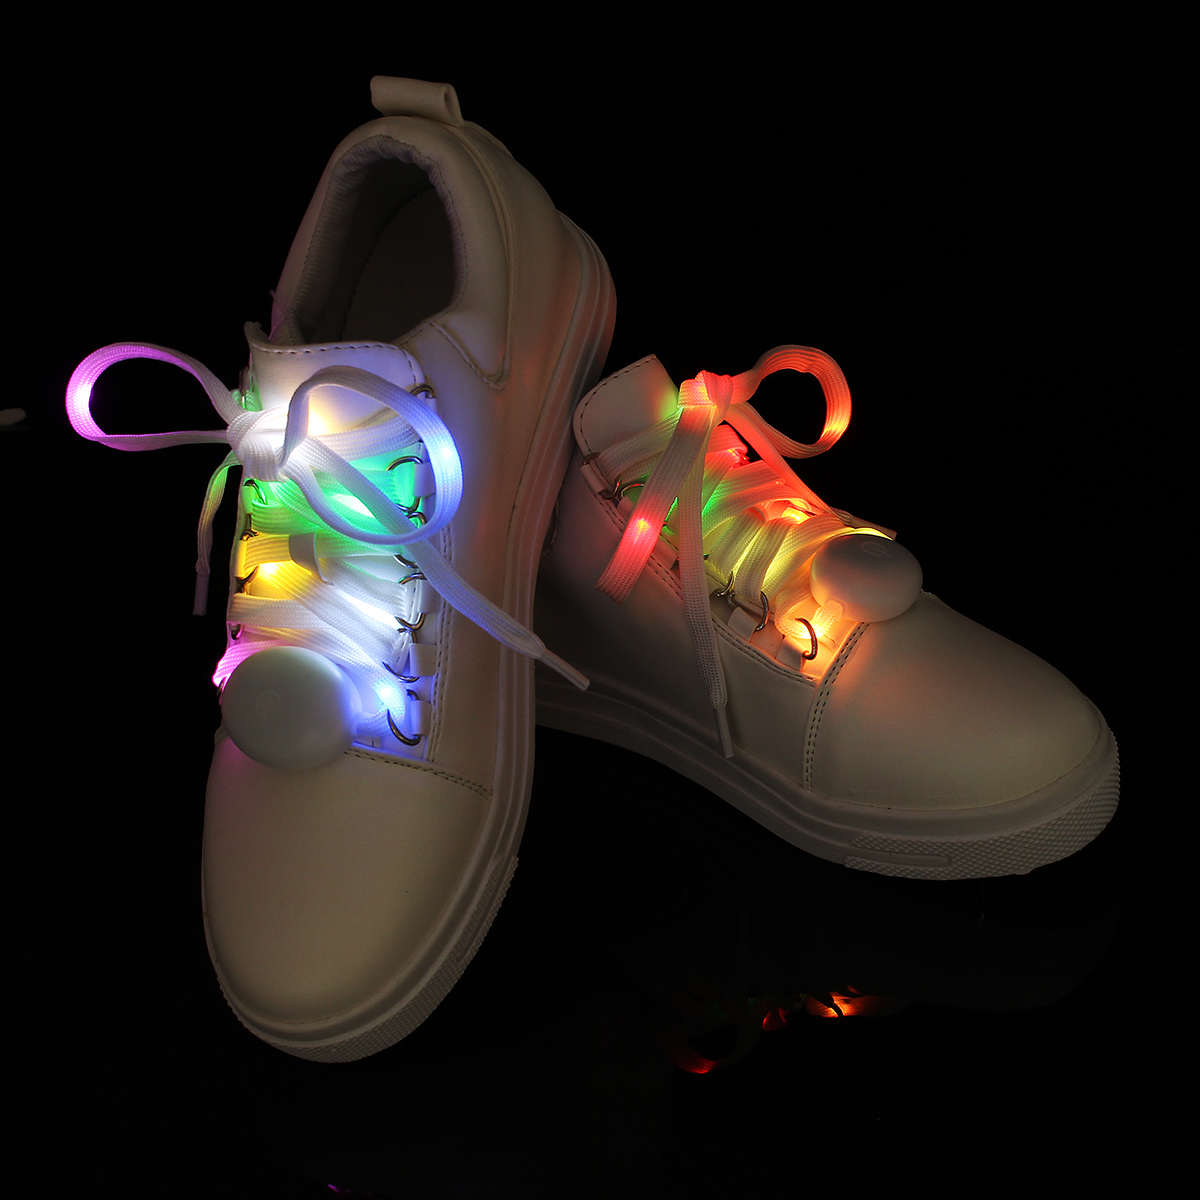 BSAID1 Pair 125cm Halloween LED Glowing Shoelaces, Multicolor Flashing Luminous Shining Sneaker Shoelaces Outdoor Fashion Shoes pair of creative luminous led flashing gloves for party ball festival